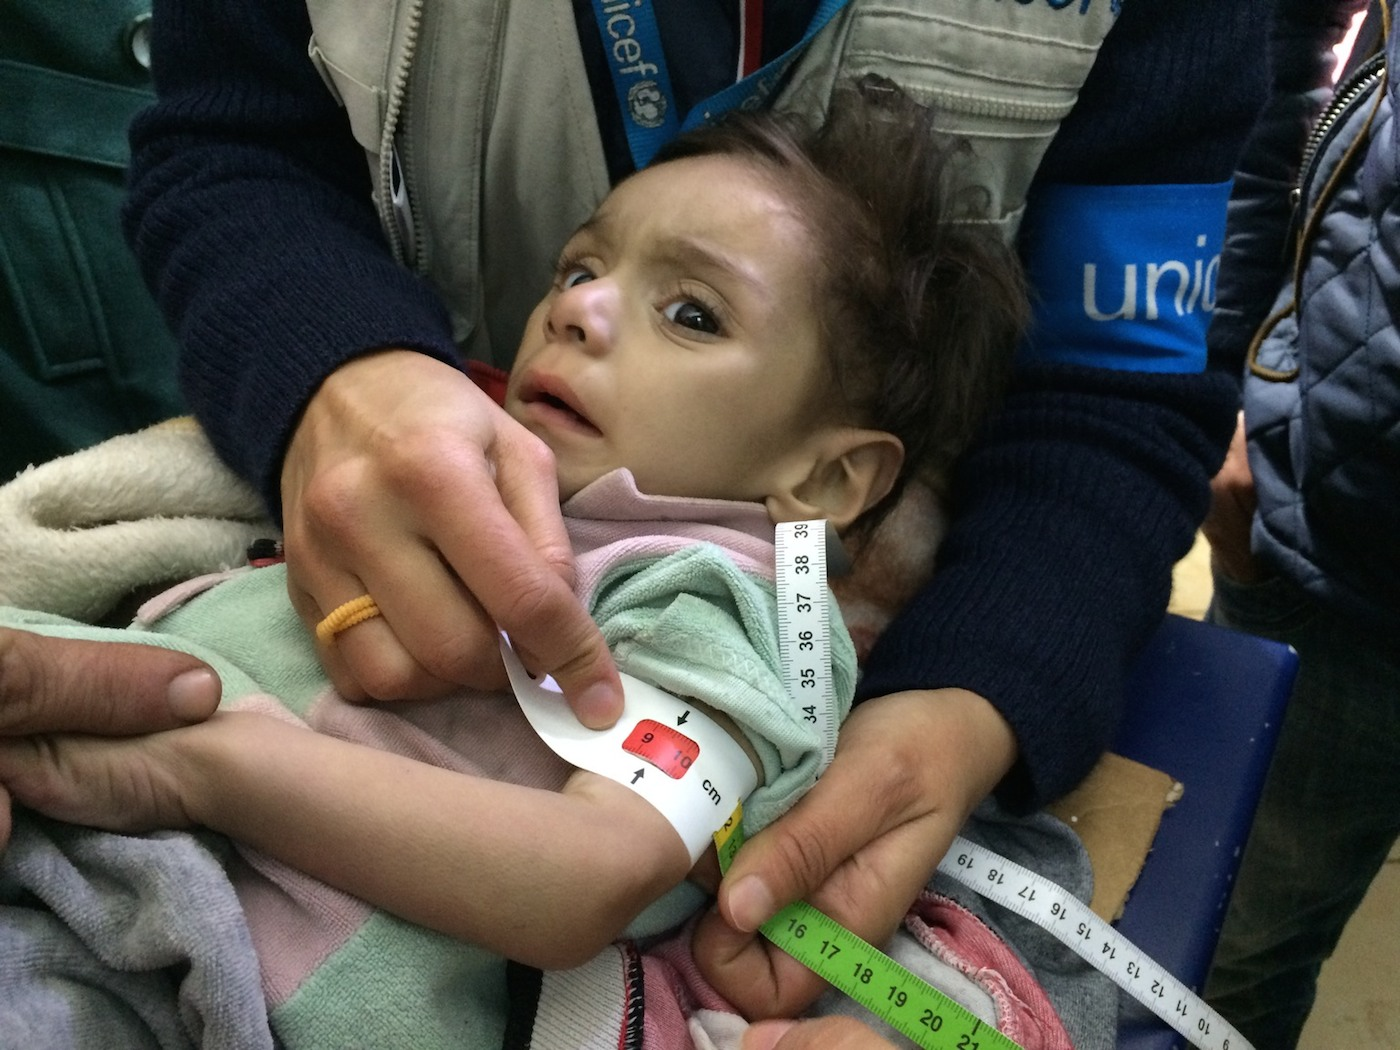 #SyriaCrisis End the Suffering On 14 January 2016, a child is screened for malnutrition at a make-shift hospital in Madaya. The UNICEF team and staff of the World Health Organisation were able to screen 25 children under five for malnutrition.